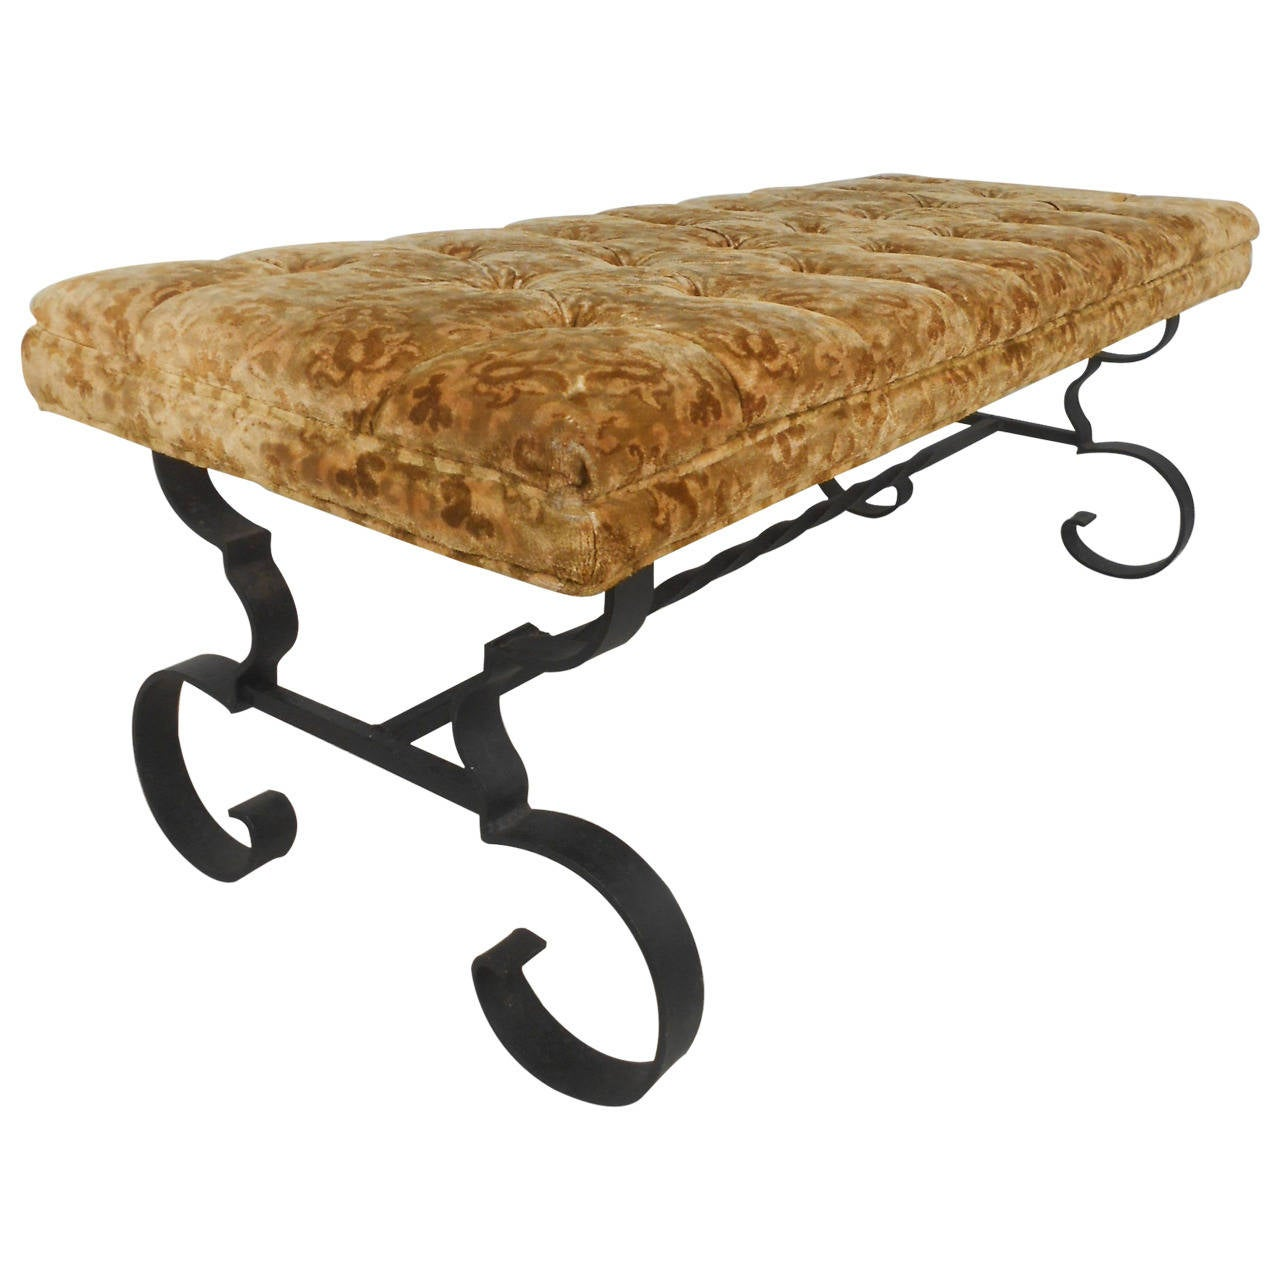 Wrought Iron Upholstered Bench At 1stdibs